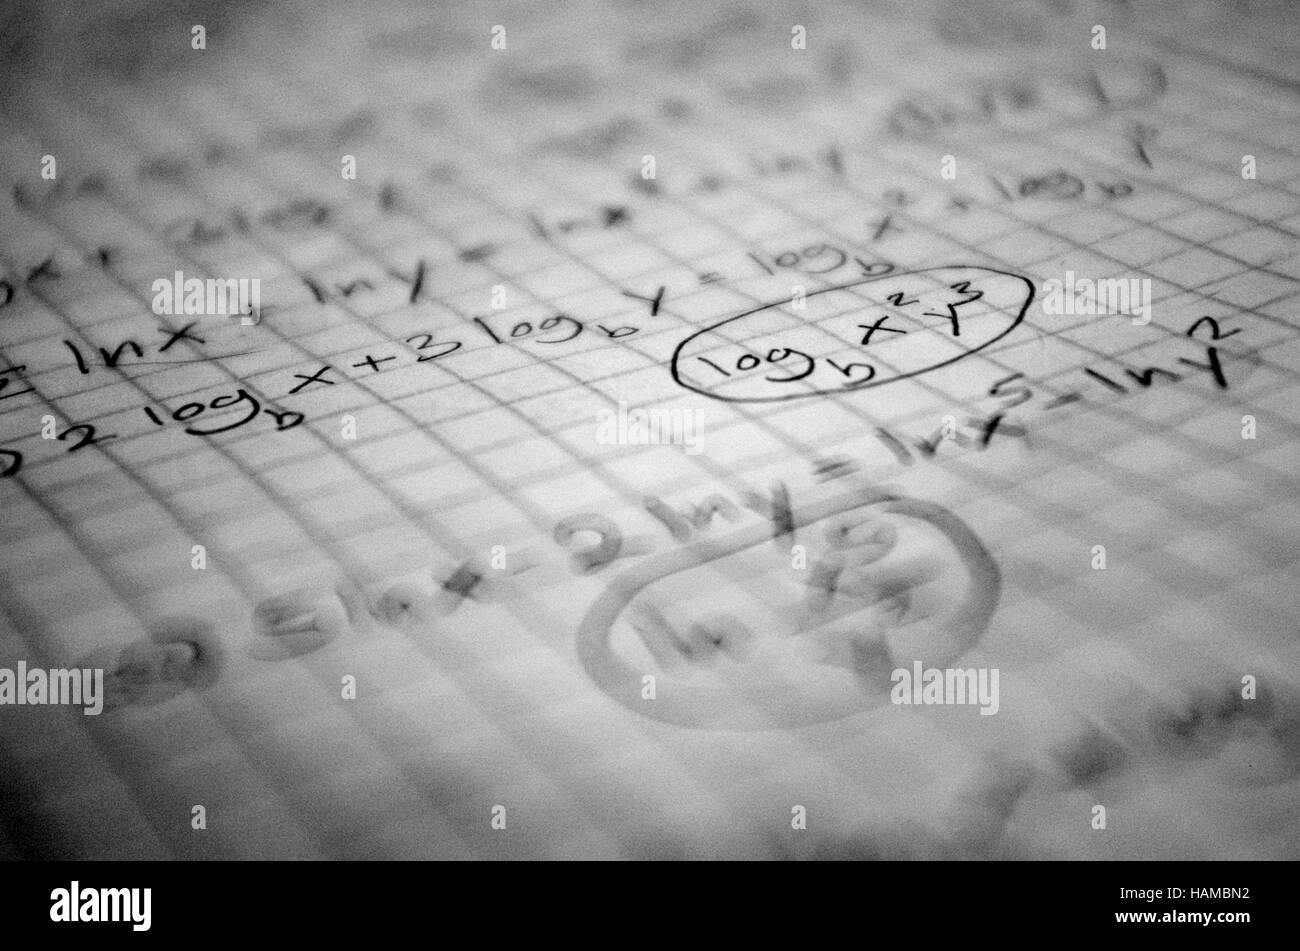 Abstract math scribble - Stock Image